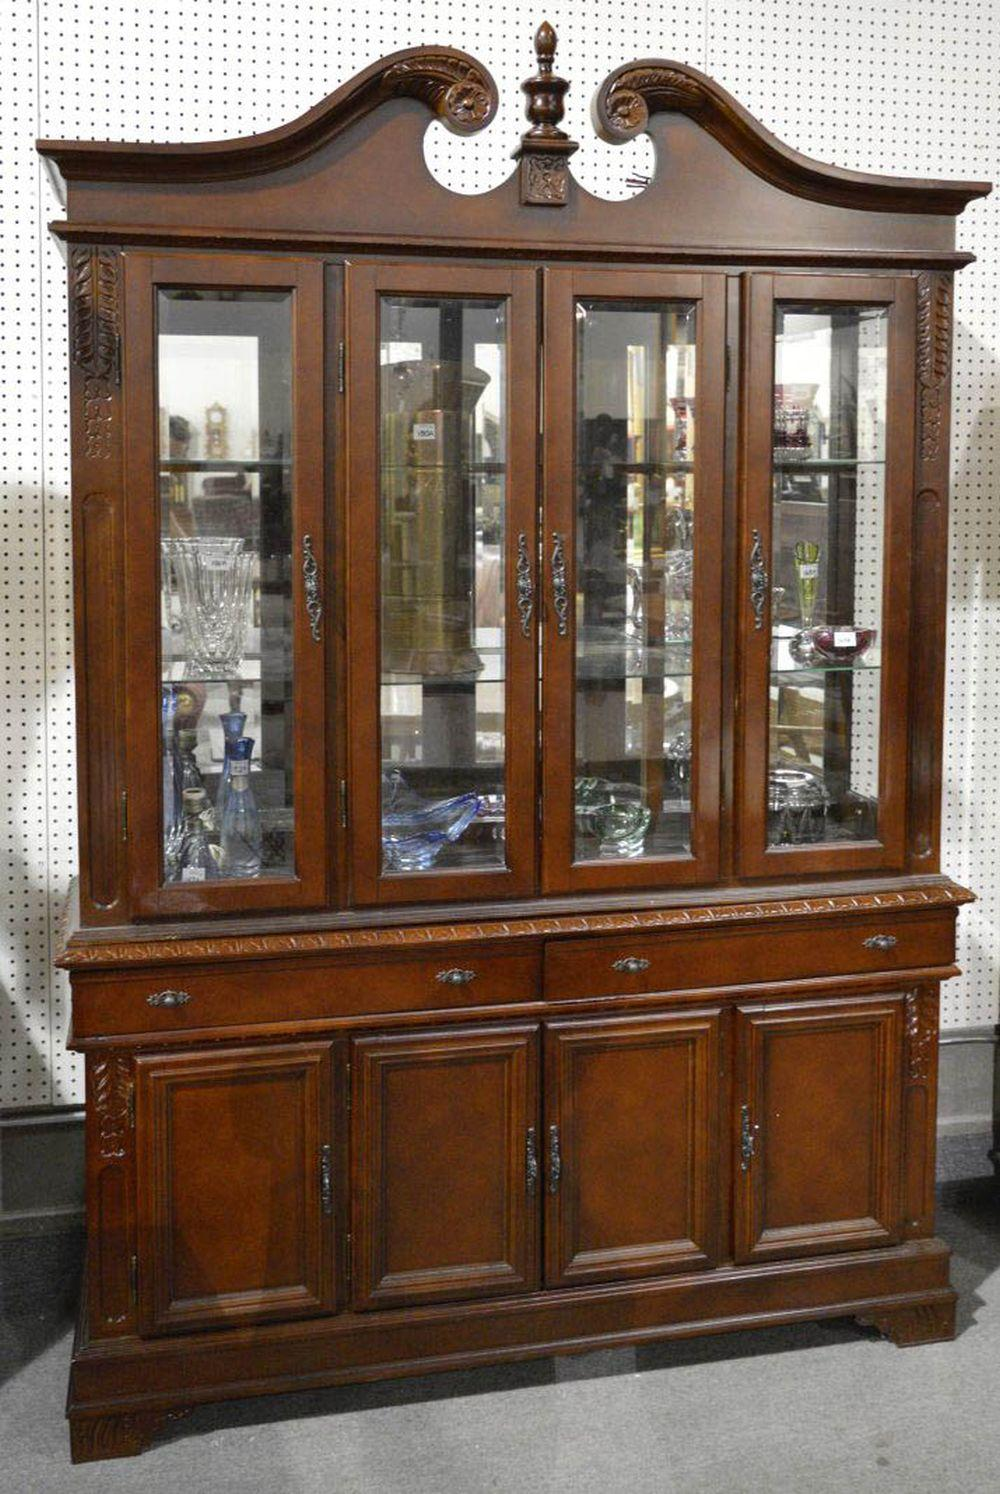 Lot 153: 2-part china cabinet